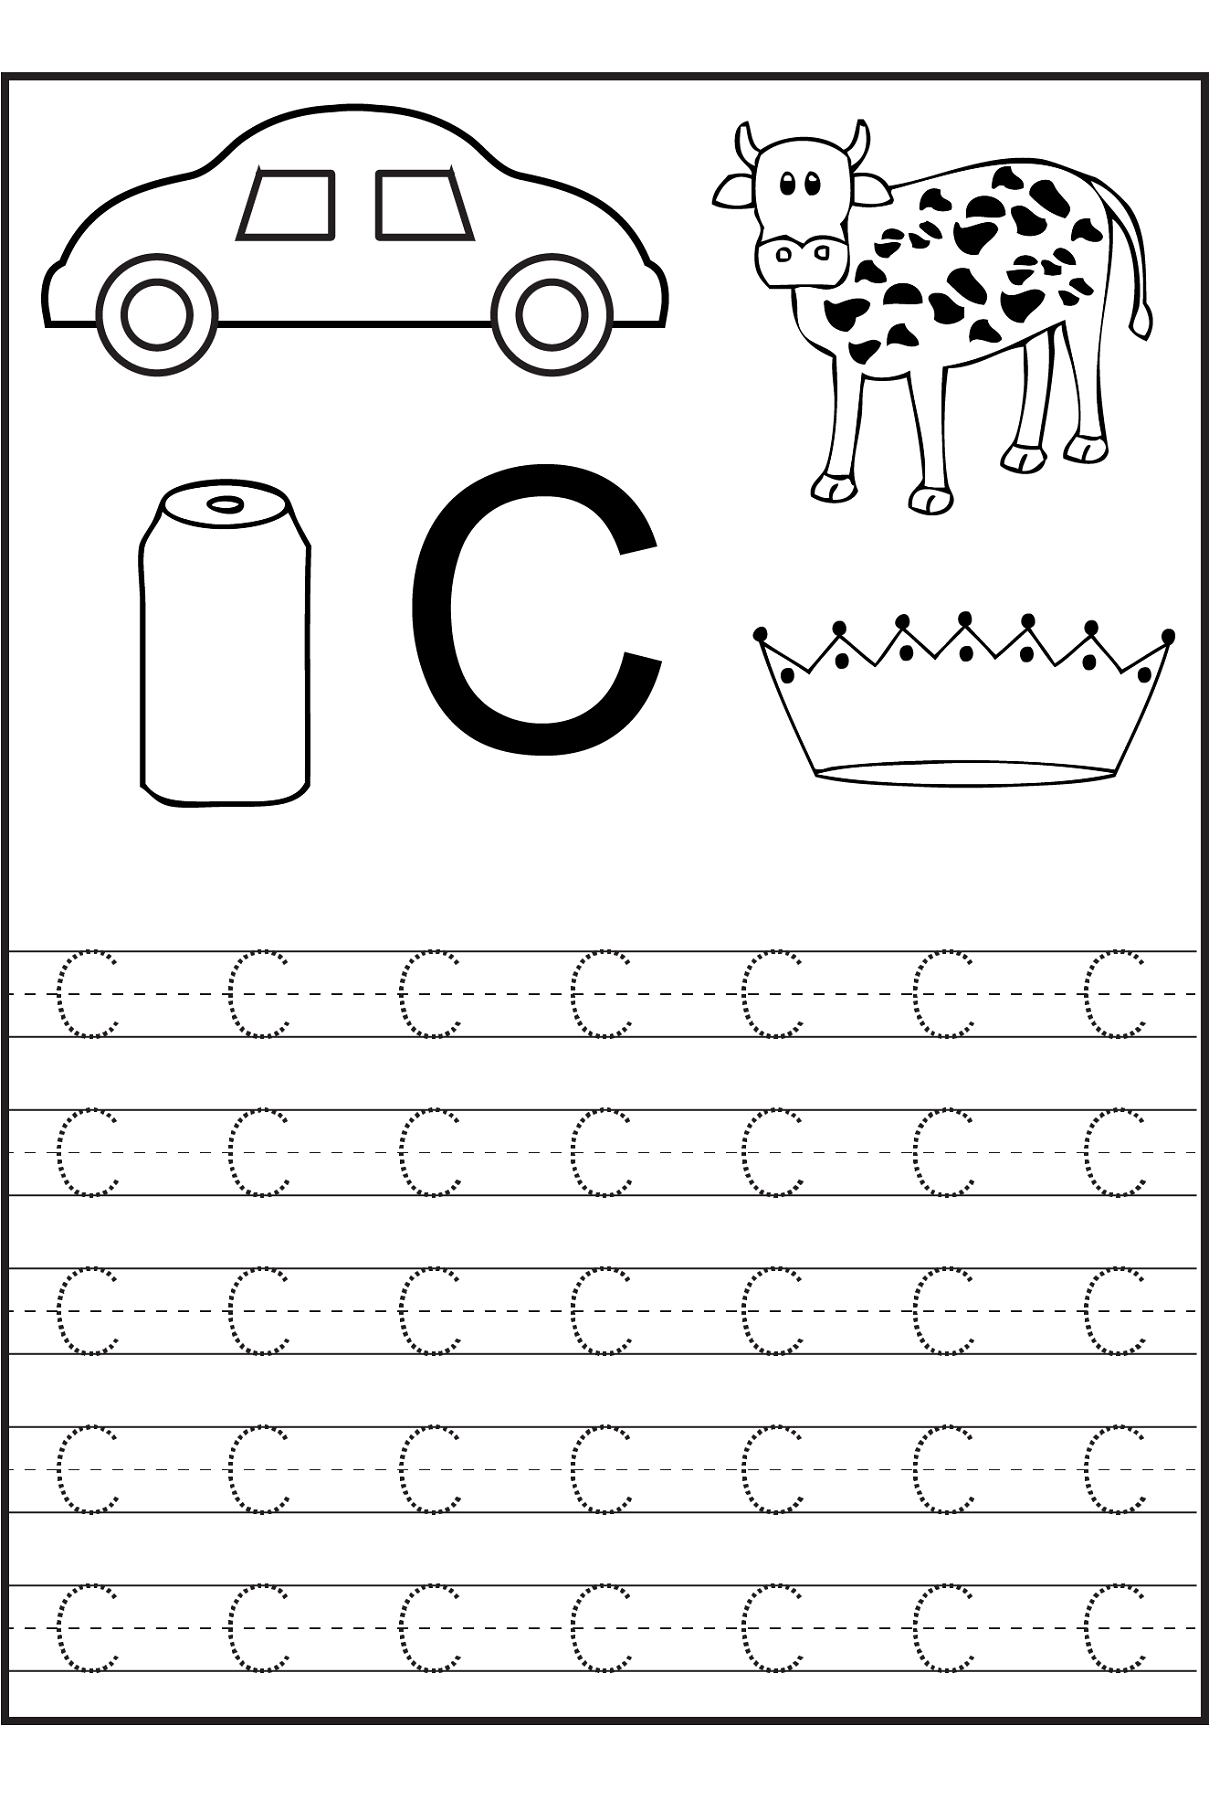 c coloring worksheet learn the letter c with fluffy and ivy worksheet c coloring